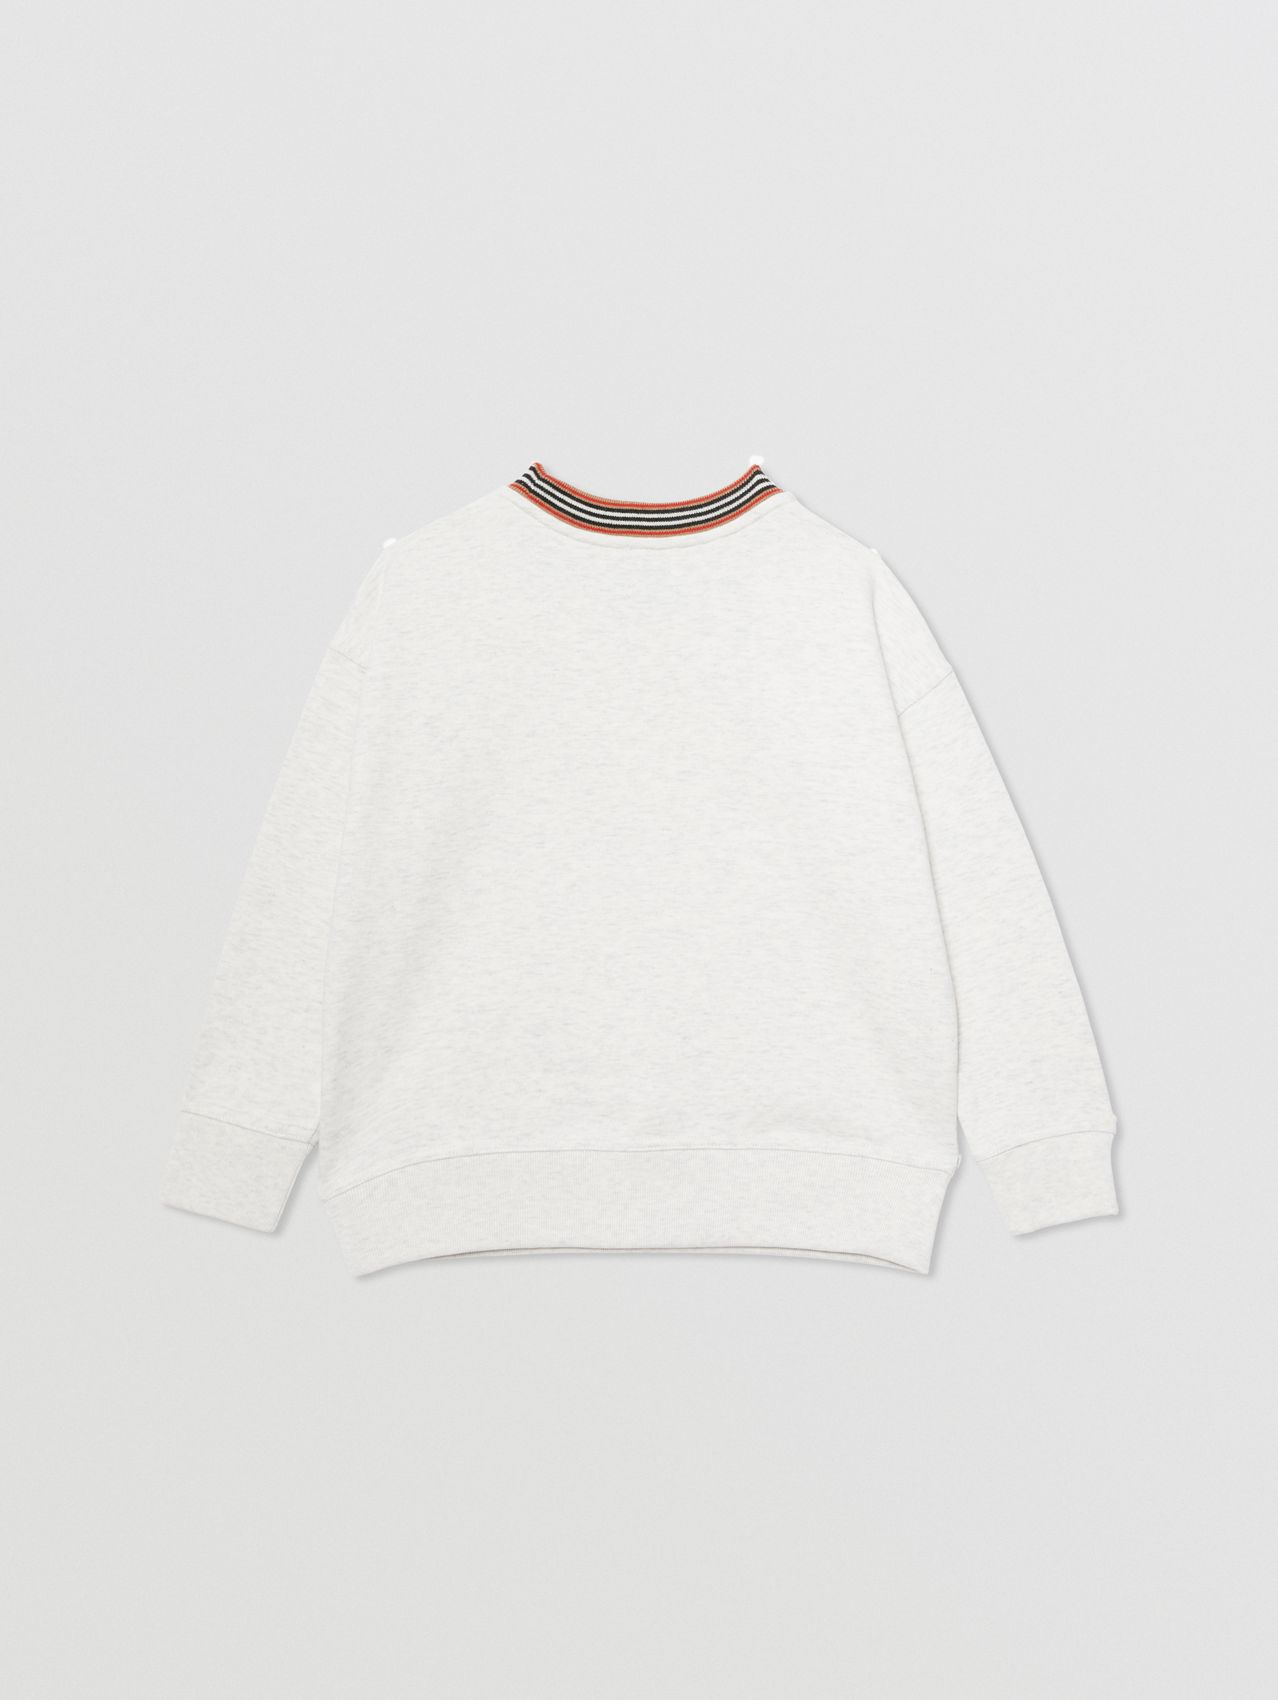 Confectionery Logo Print Cotton Sweatshirt in White Melange